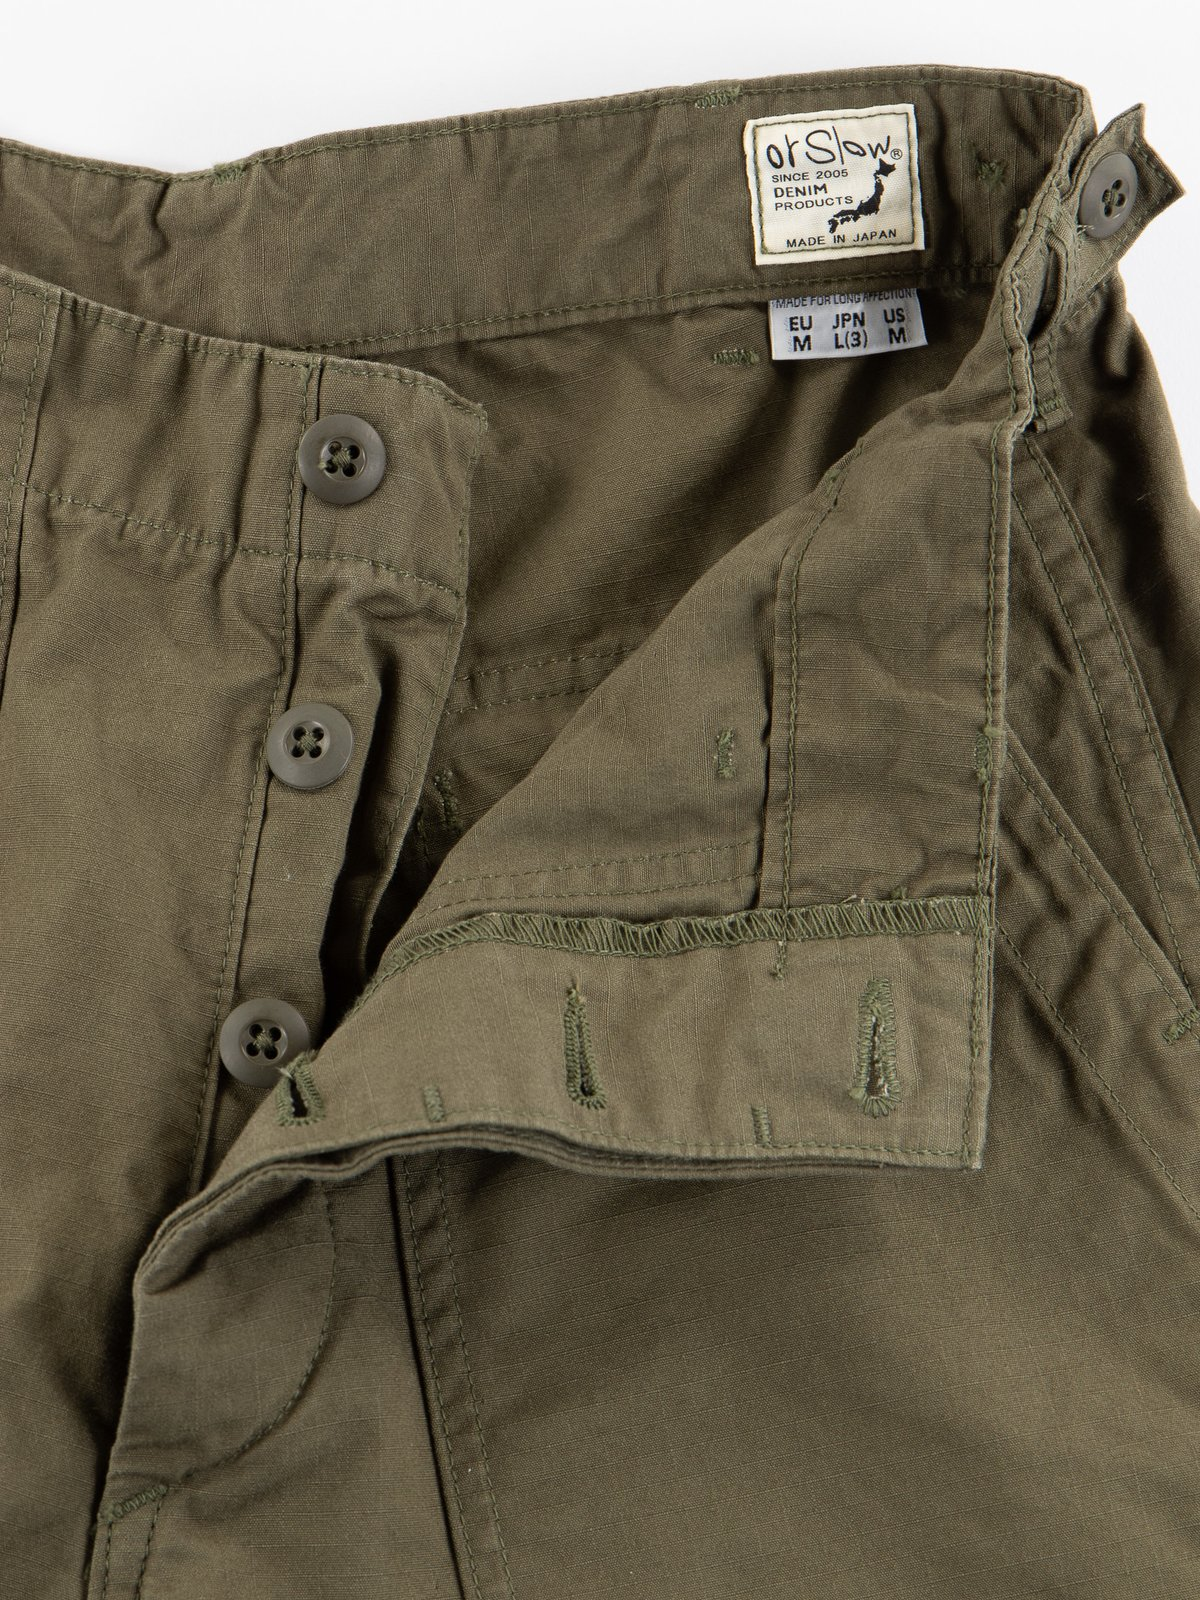 Army Green Ripstop Regular Fit US Army Fatigue Pant - Image 6